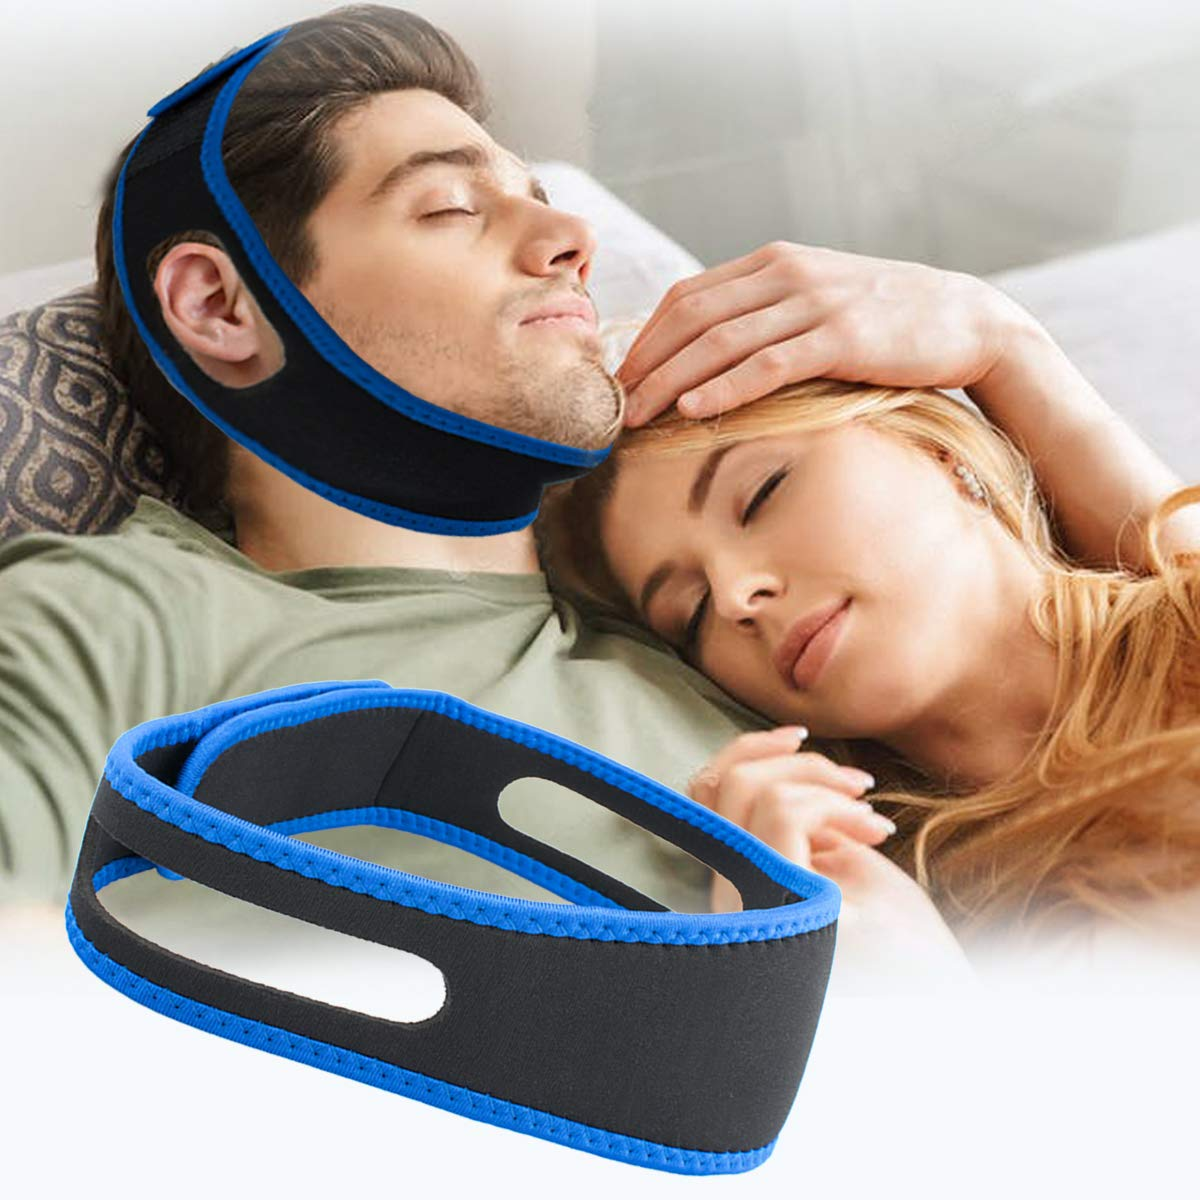 Anti Snoring Chin Strap,Snoring Solution Anti Snoring Devices Effective Stop  Snoring Chin Strap for Men Women Adjustable Snore Reduction Chin Straps  Snore Stopper Advanced Sleep Aids for Better Sleep - Buy Online